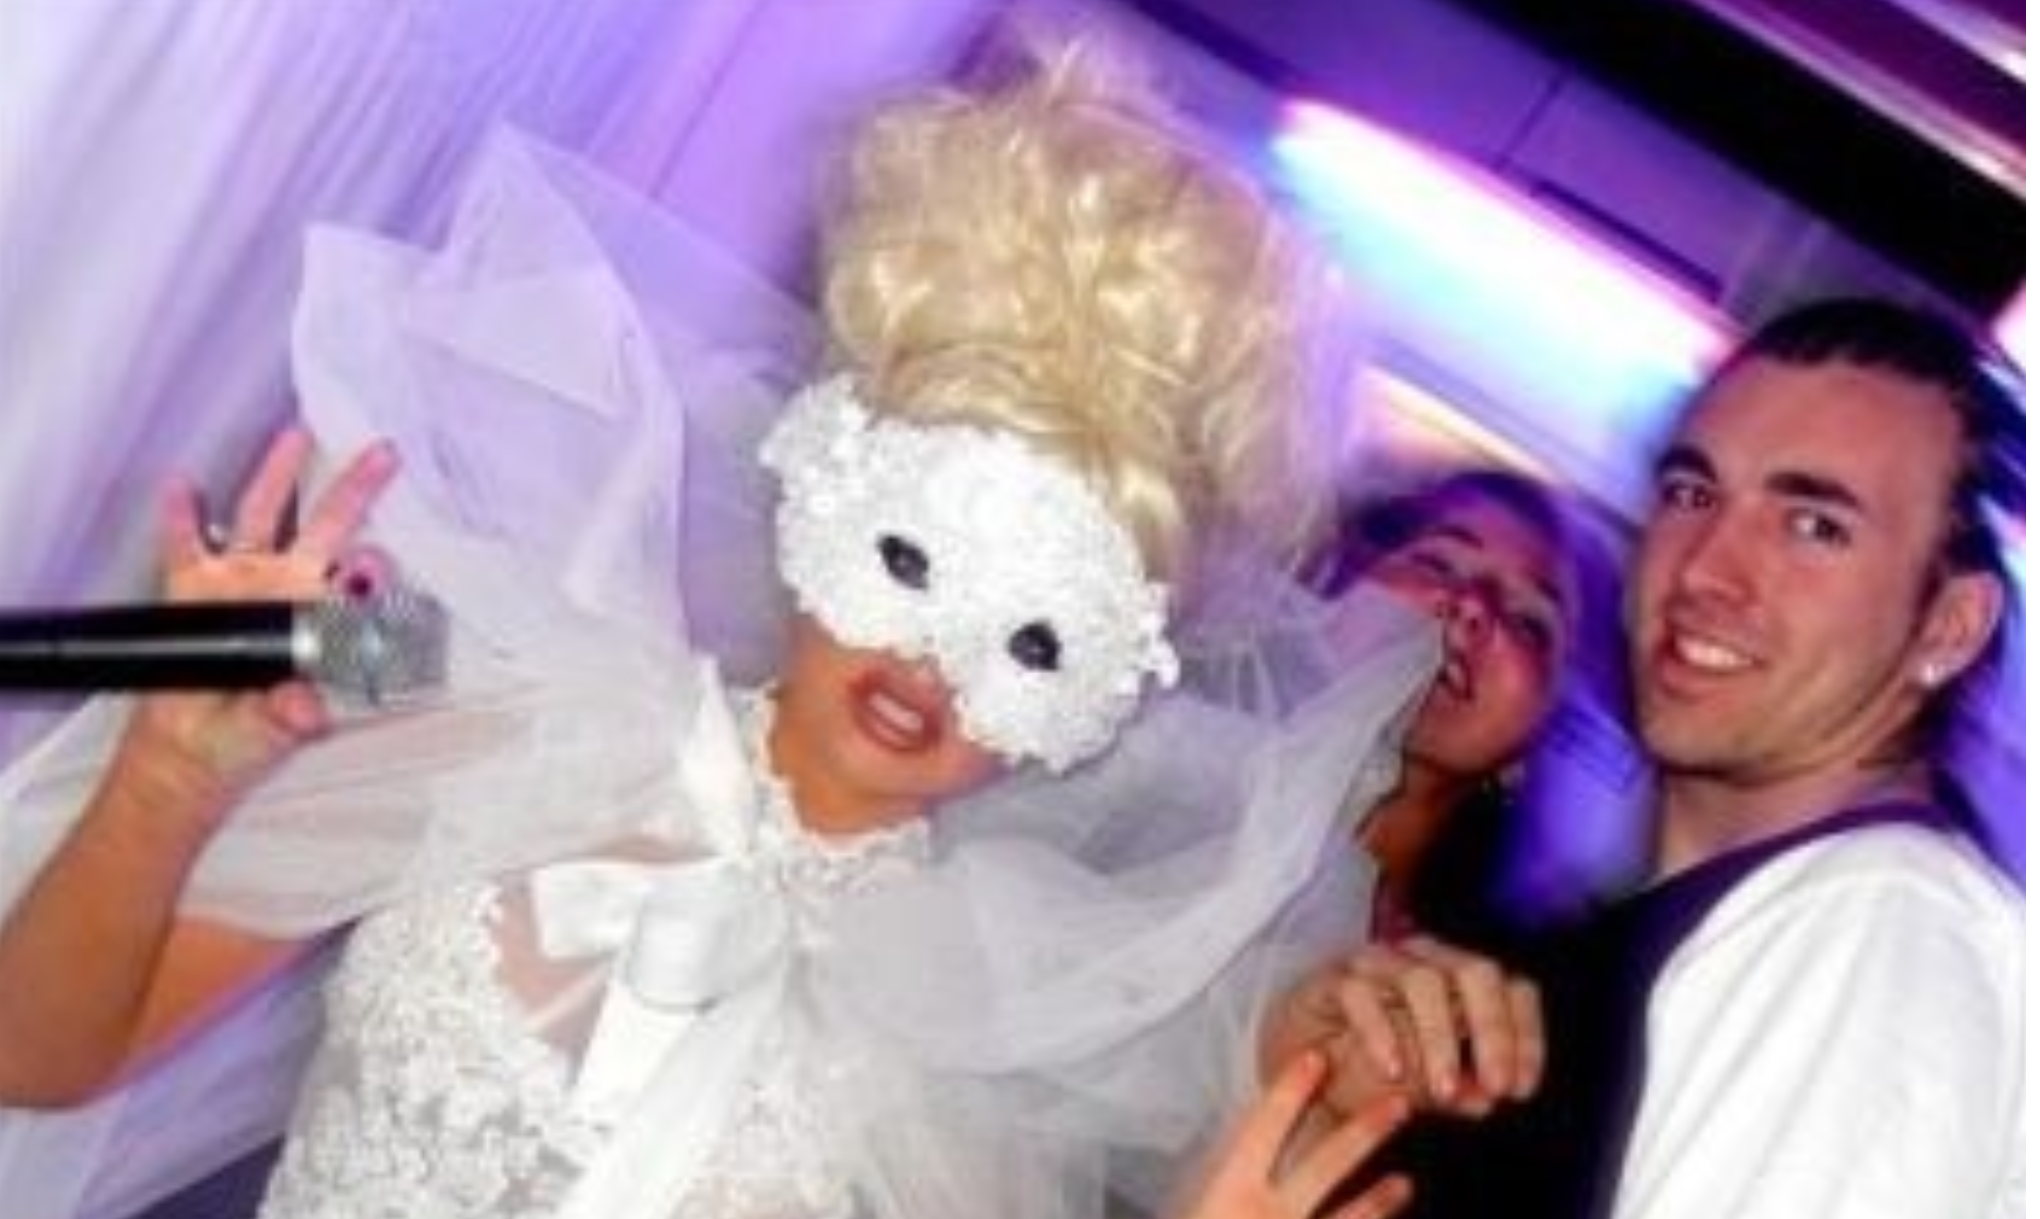 Lady Gaga Look-a-like